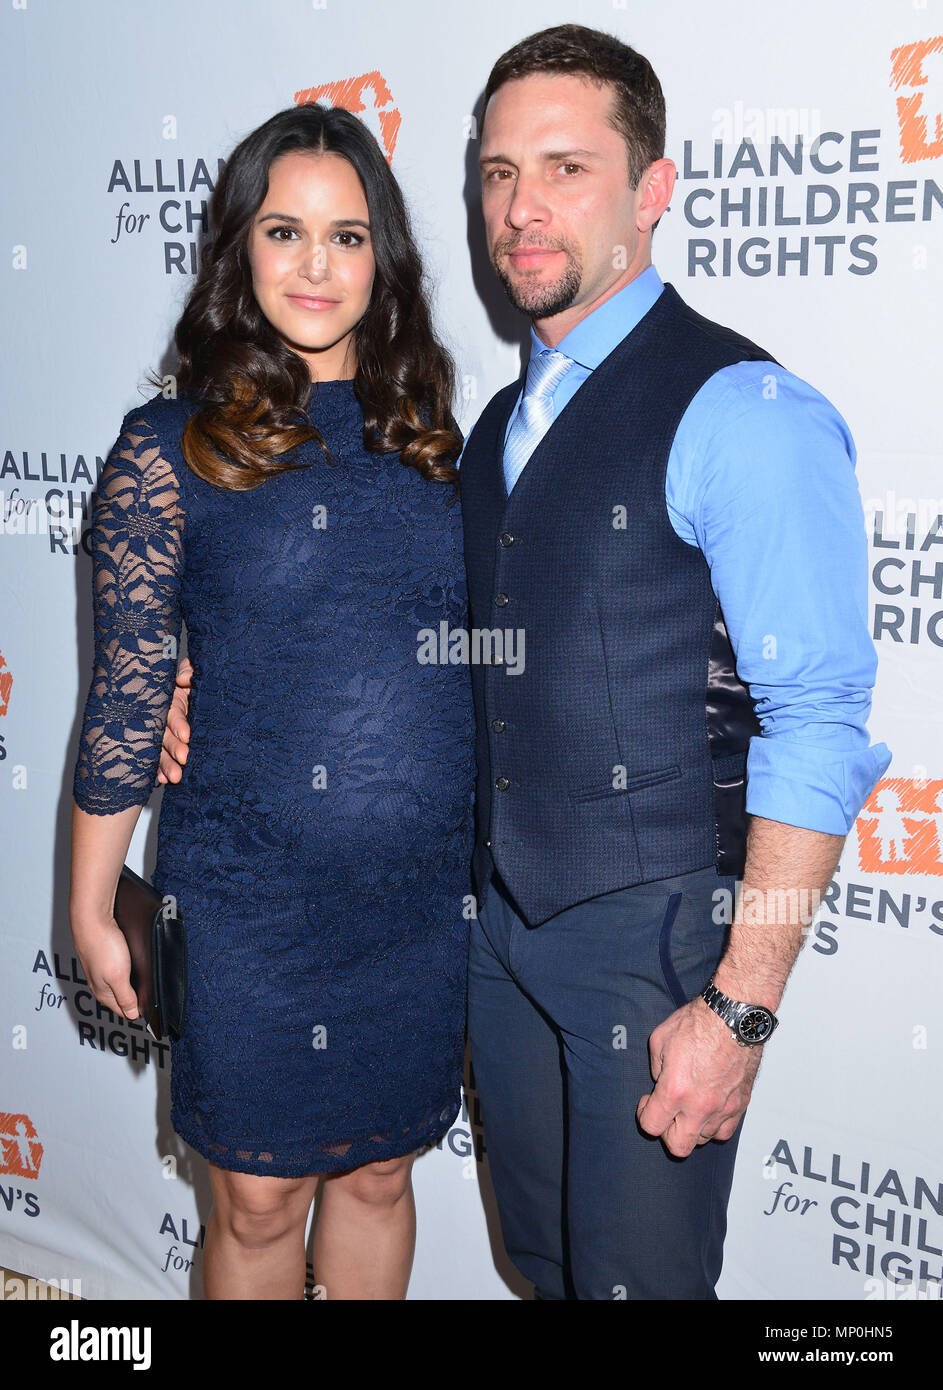 Melissa Fumero, David Fumero 038 arriving The Alliance for ChildrenÕs RightsÕ 24th Annual Dinner at the Beverly Hilton Hotel in Los Angeles. March 10, 2016.Melissa Fumero, David Fumero 038 ------------- Red Carpet Event, Vertical, USA, Film Industry, Celebrities,  Photography, Bestof, Arts Culture and Entertainment, Topix Celebrities fashion /  Vertical, Best of, Event in Hollywood Life - California,  Red Carpet and backstage, USA, Film Industry, Celebrities,  movie celebrities, TV celebrities, Music celebrities, Photography, Bestof, Arts Culture and Entertainment,  Topix, vertical,  family fr - Stock Image